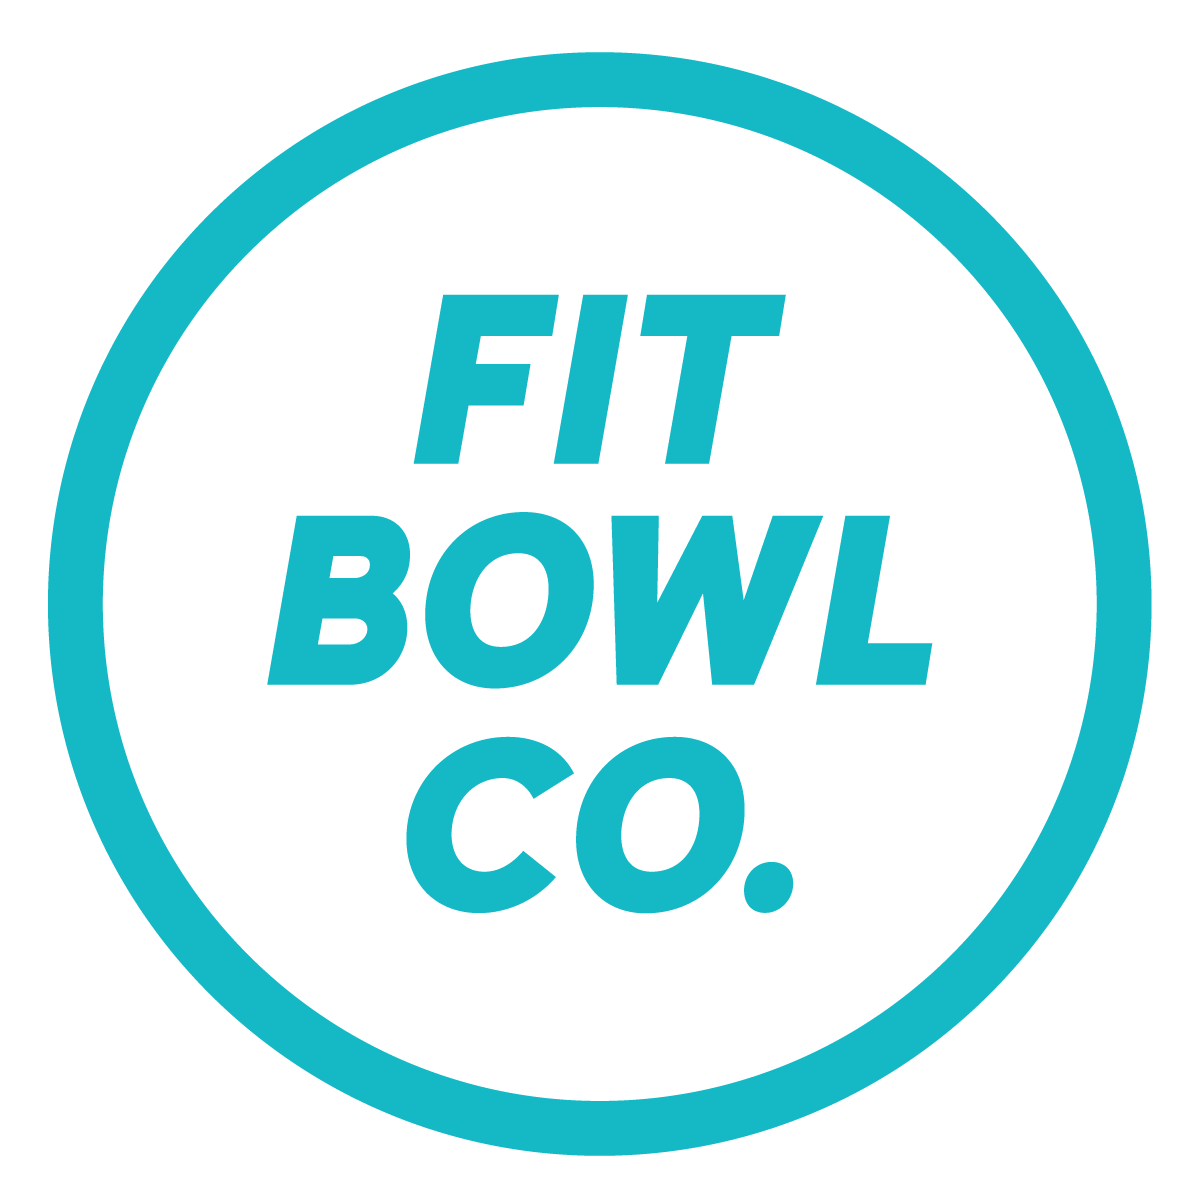 Fit Bowl Co. | Acai Bowls | Davis Islands & South Tampa